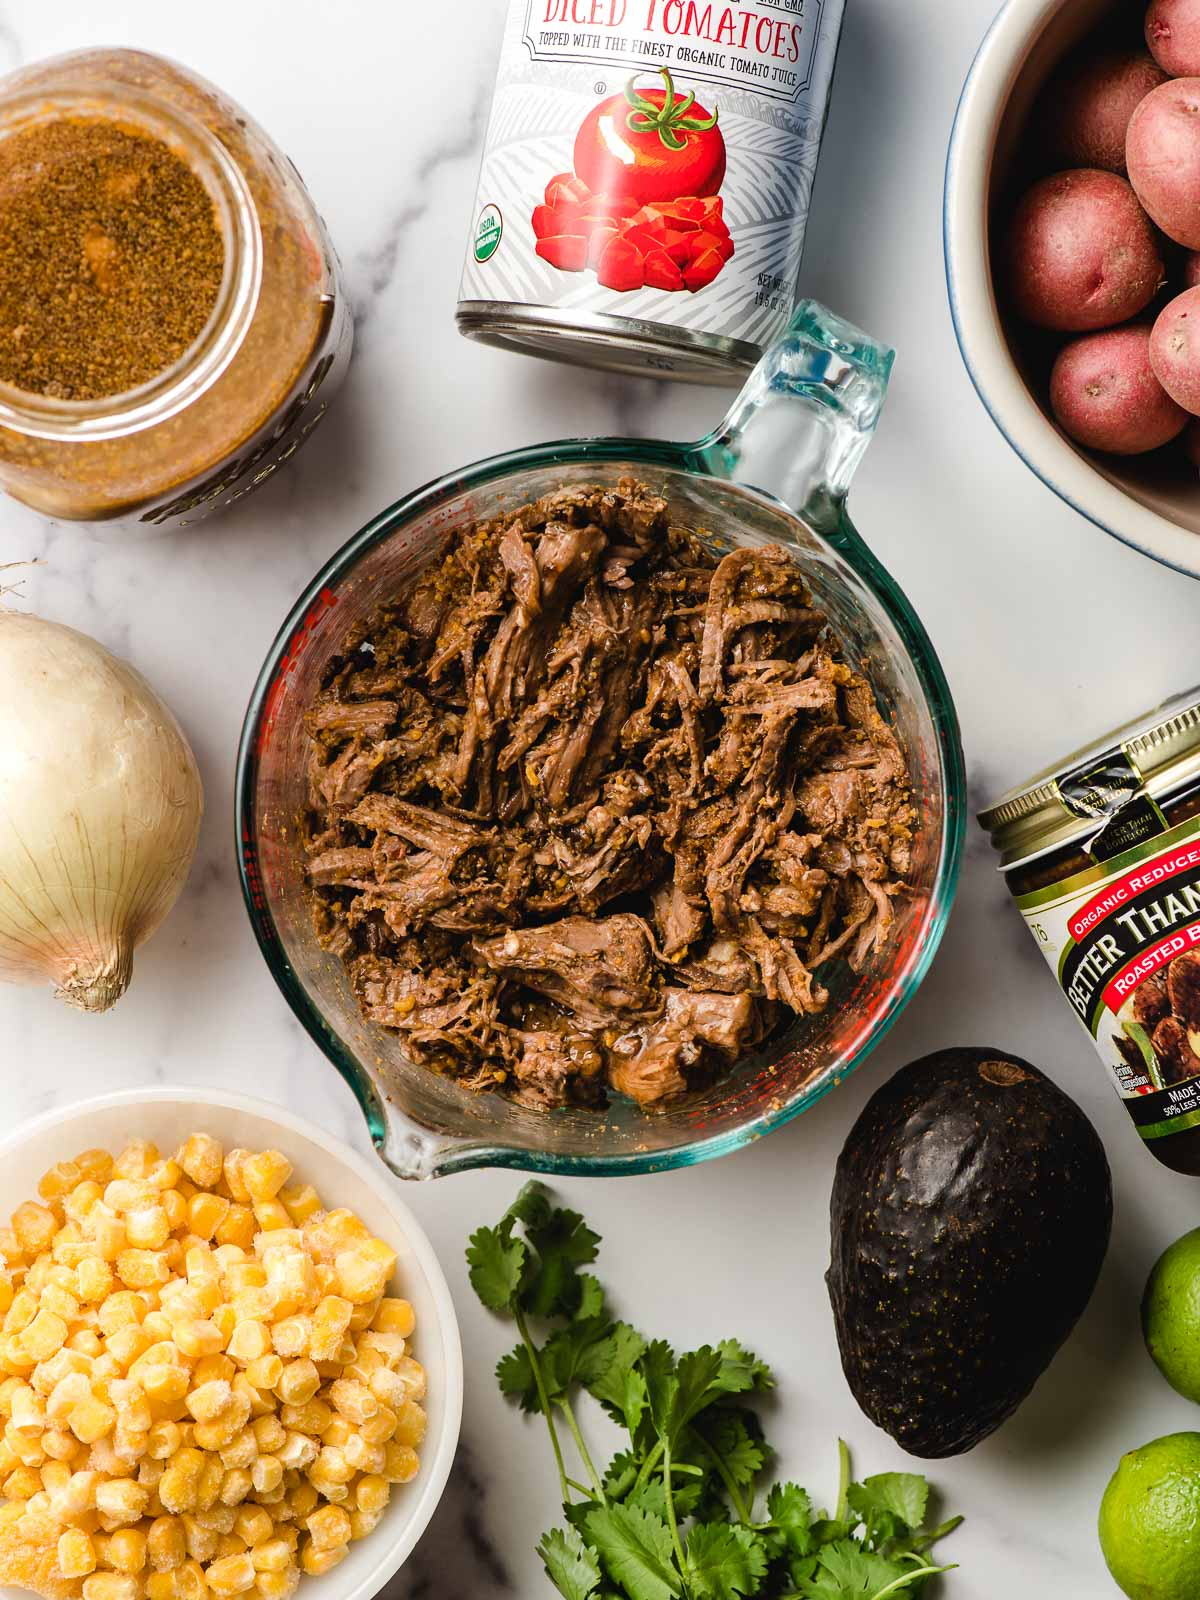 Ingredients for beef stew arranged on a white background- barbacoa beef, corn, cilantro, avocado, onion, broth, canned tomatoes, potatoes.